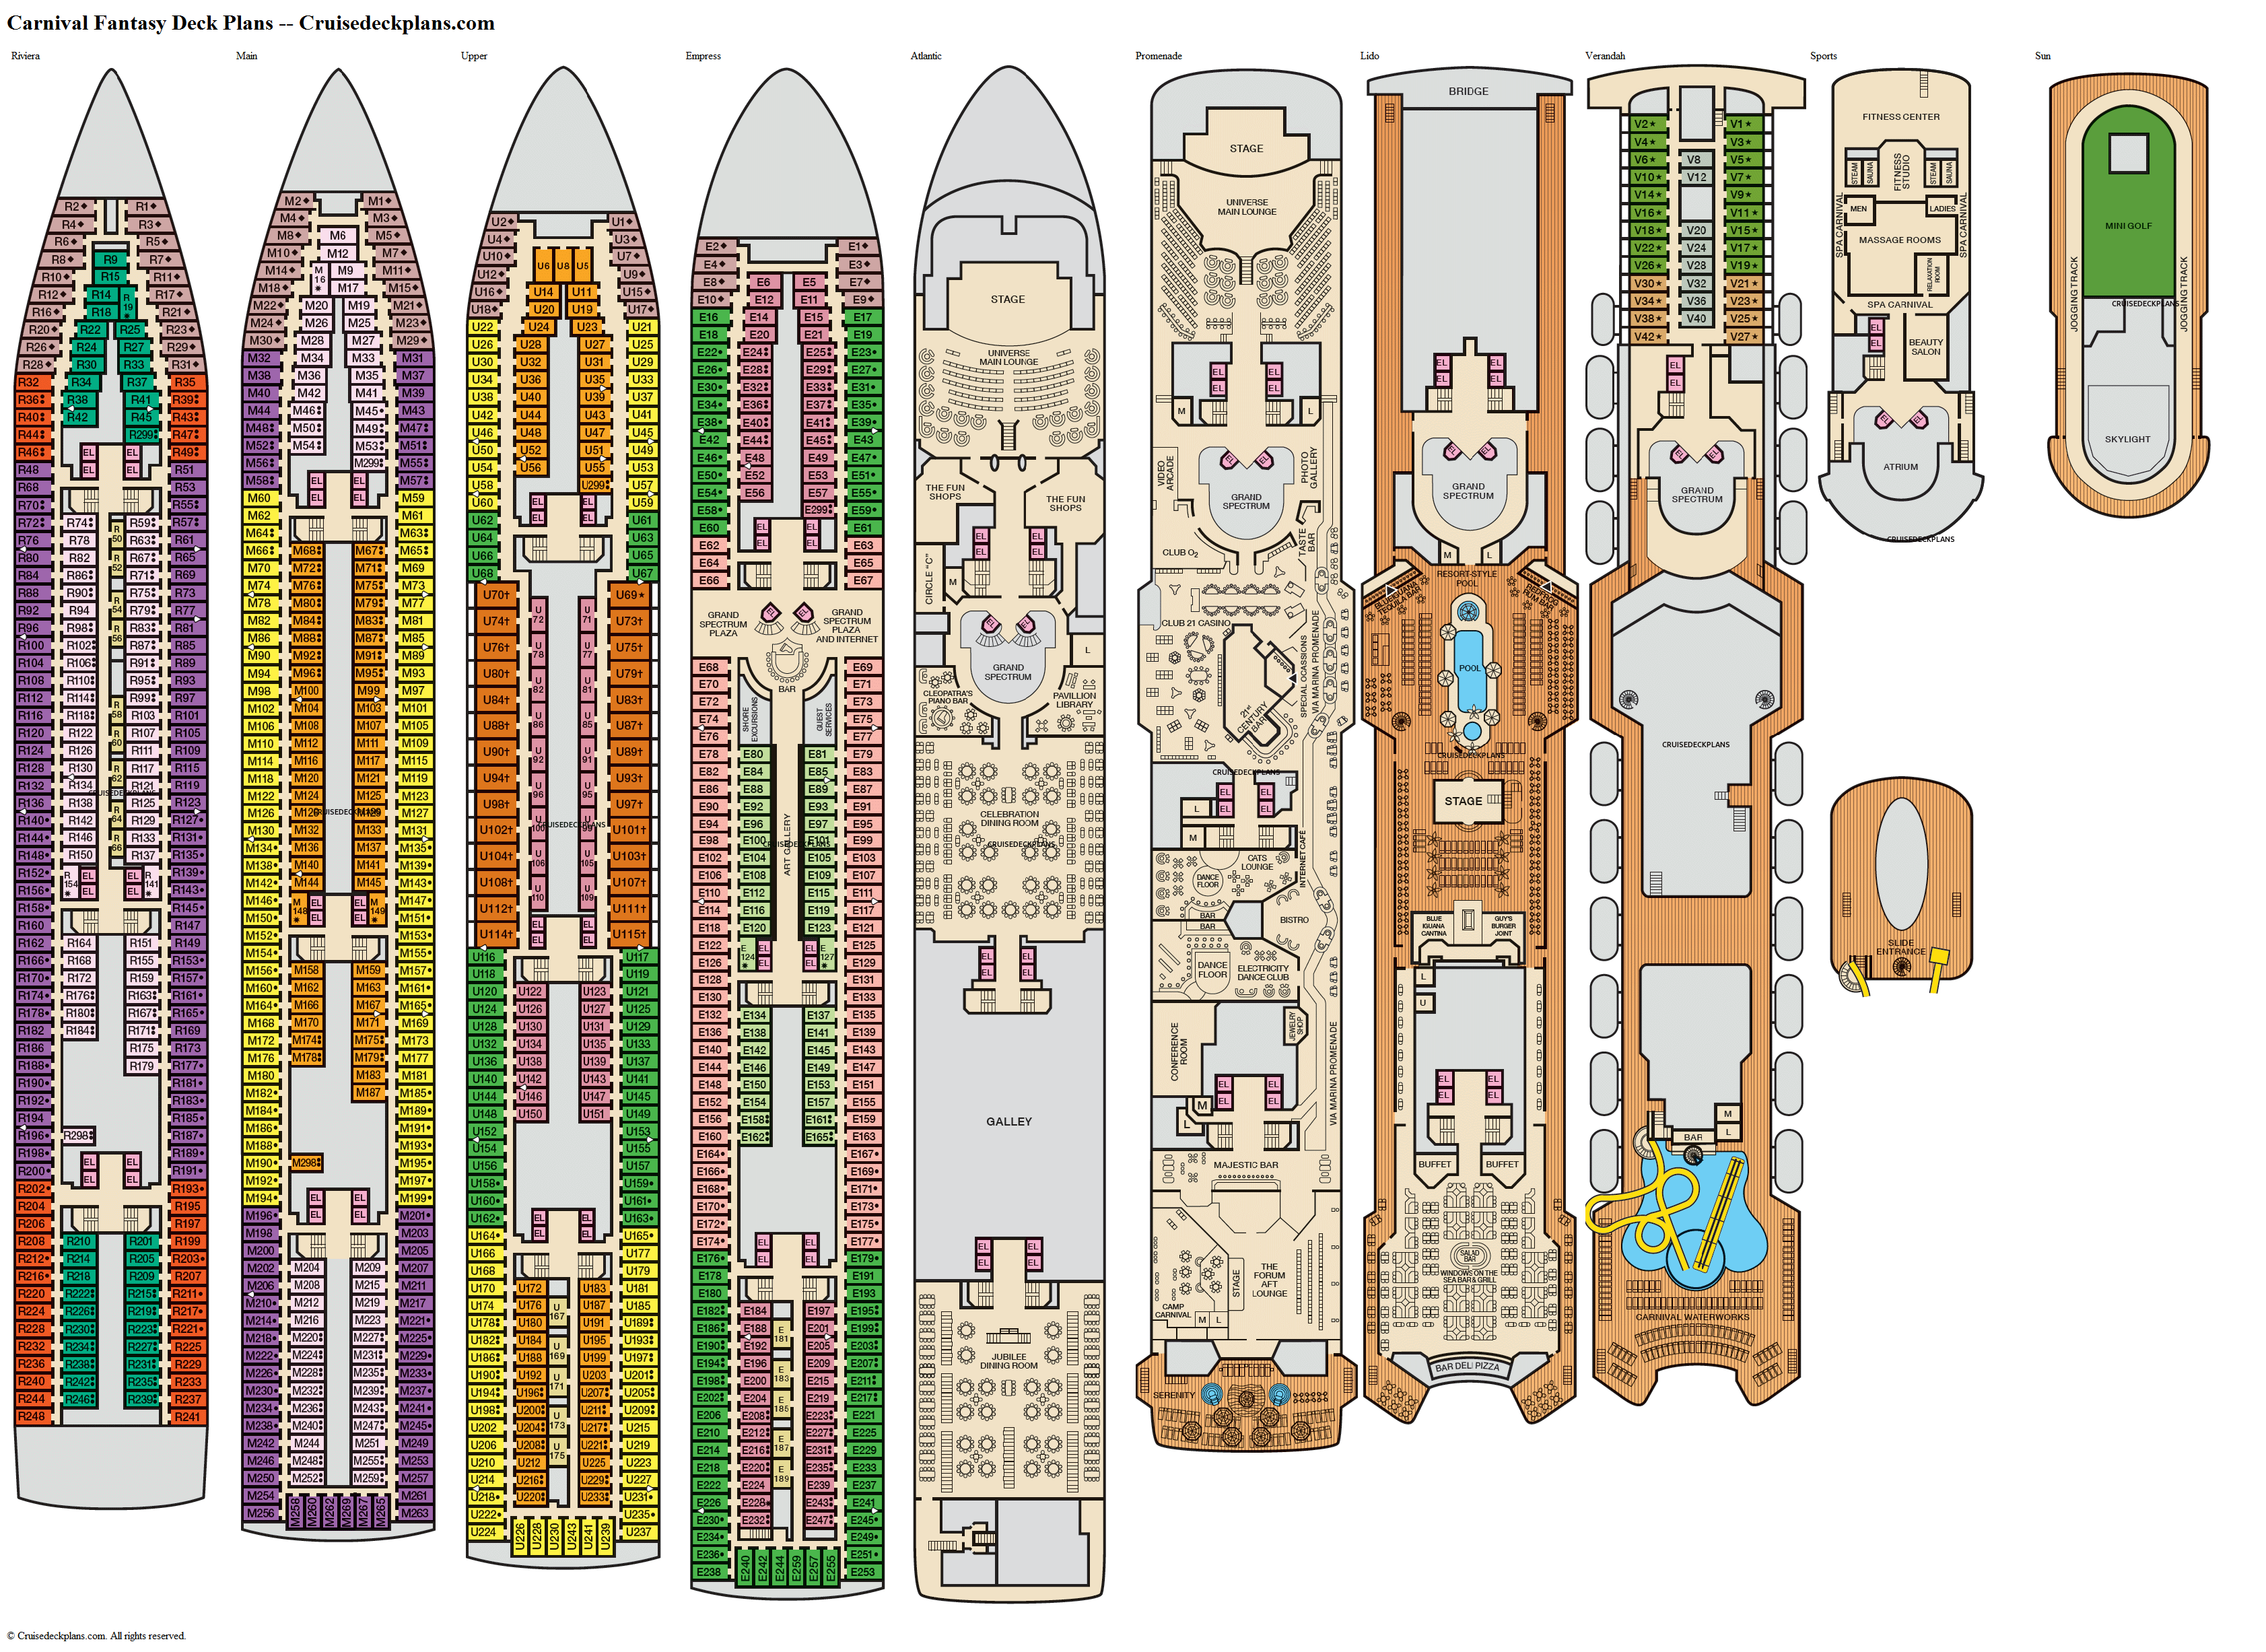 Carnival Fantasy deck plans image